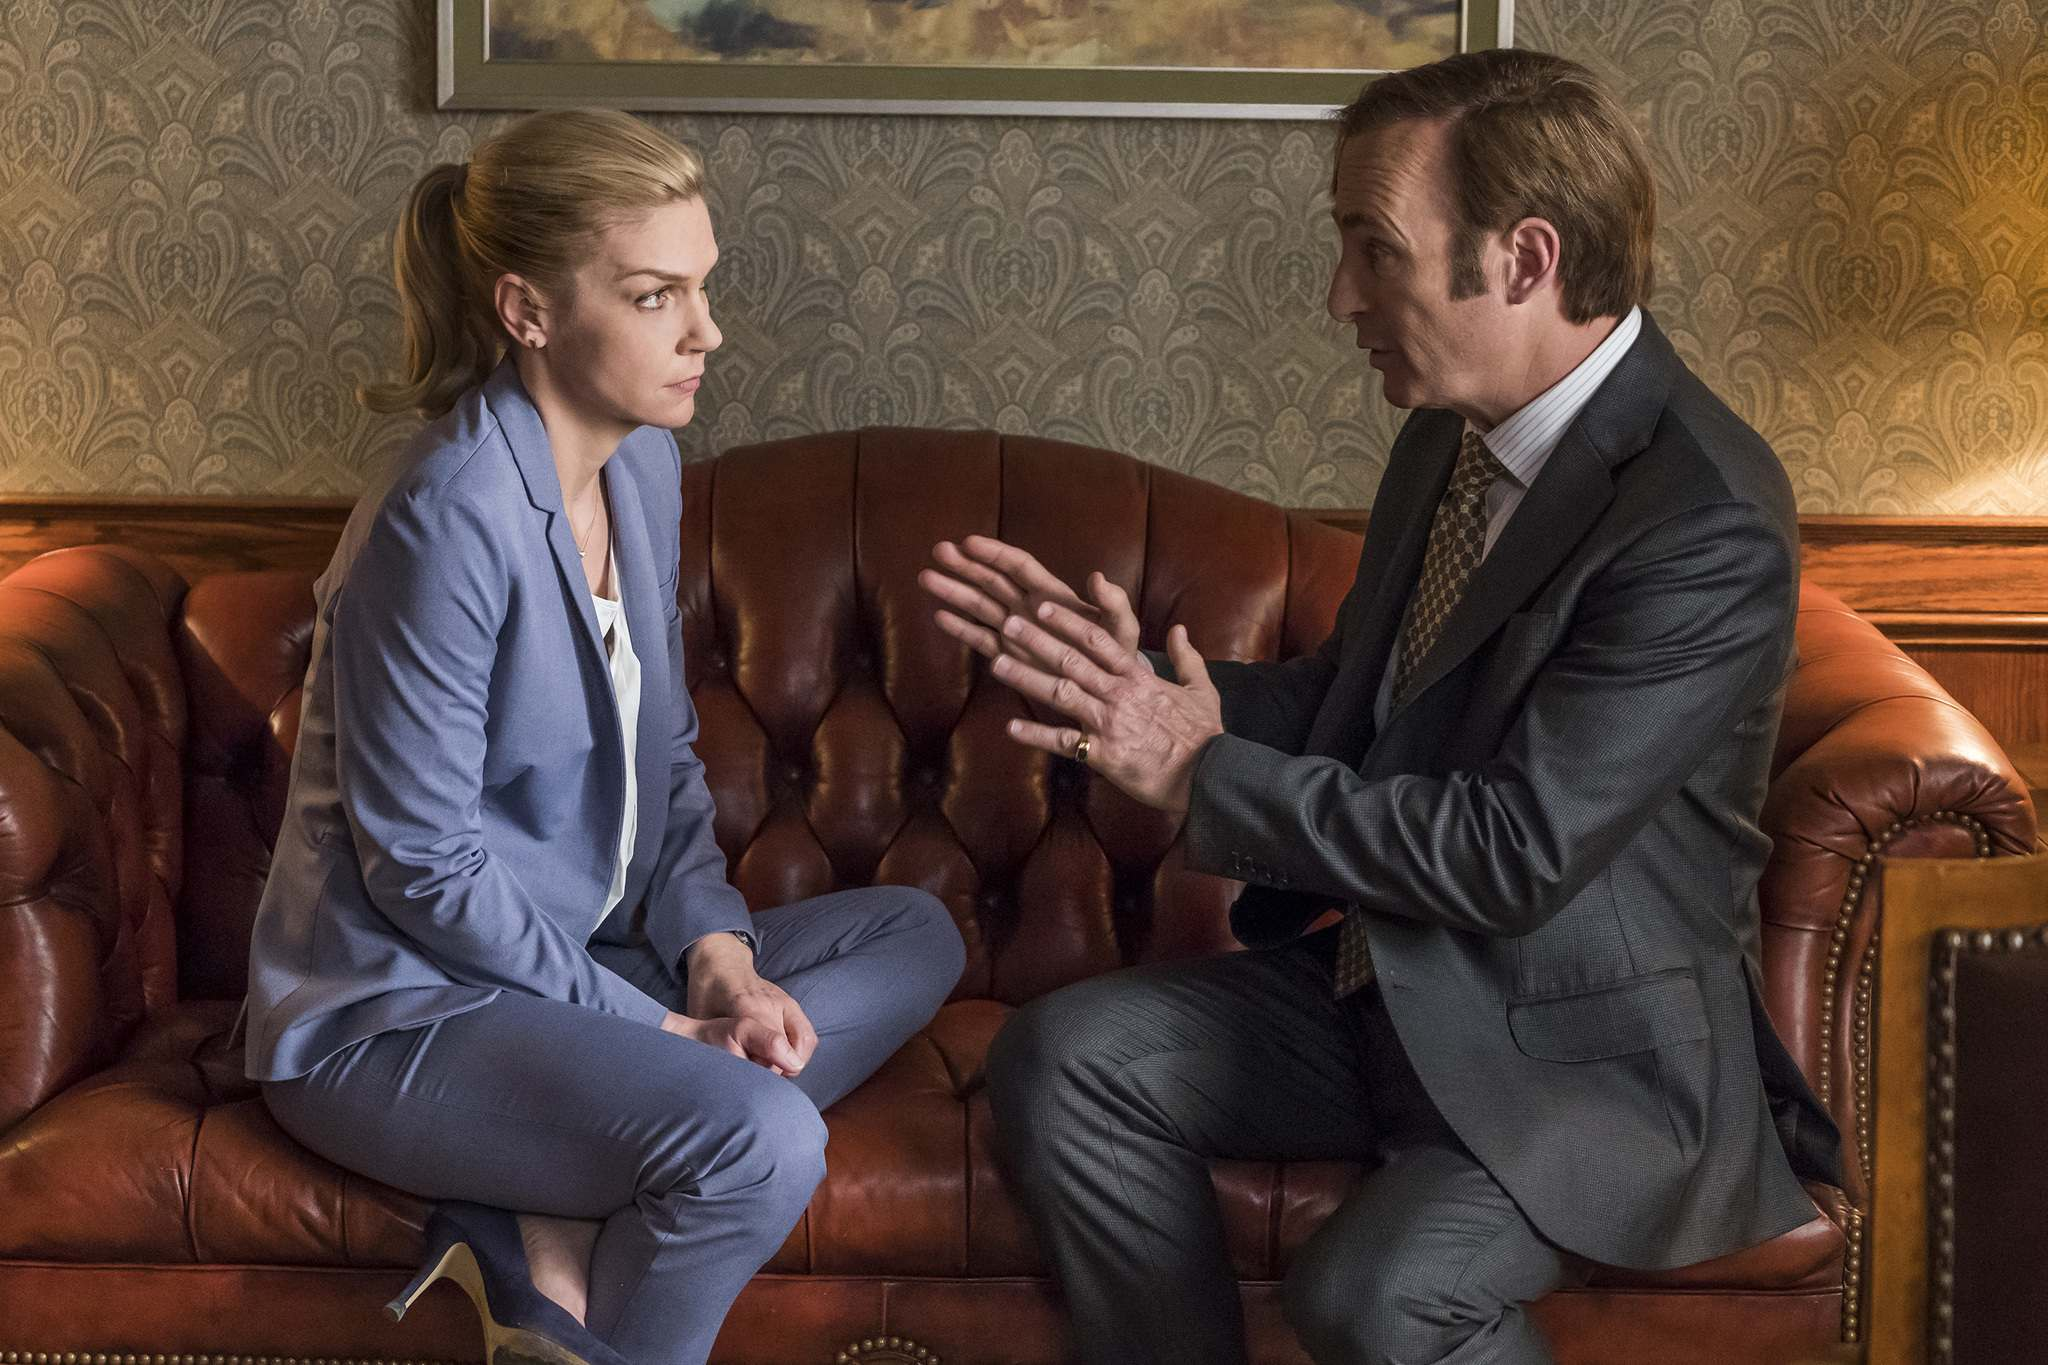 Sony Pictures Television</p><p>The central premise of Better Call Saul is the transformation of Jimmy McGill (Bob Odenkirk), seen with fellow lawyer Kim Wexler (Rhea Seehorn), into Breaking Bad&rsquo;s Saul Goodman.</p></p>